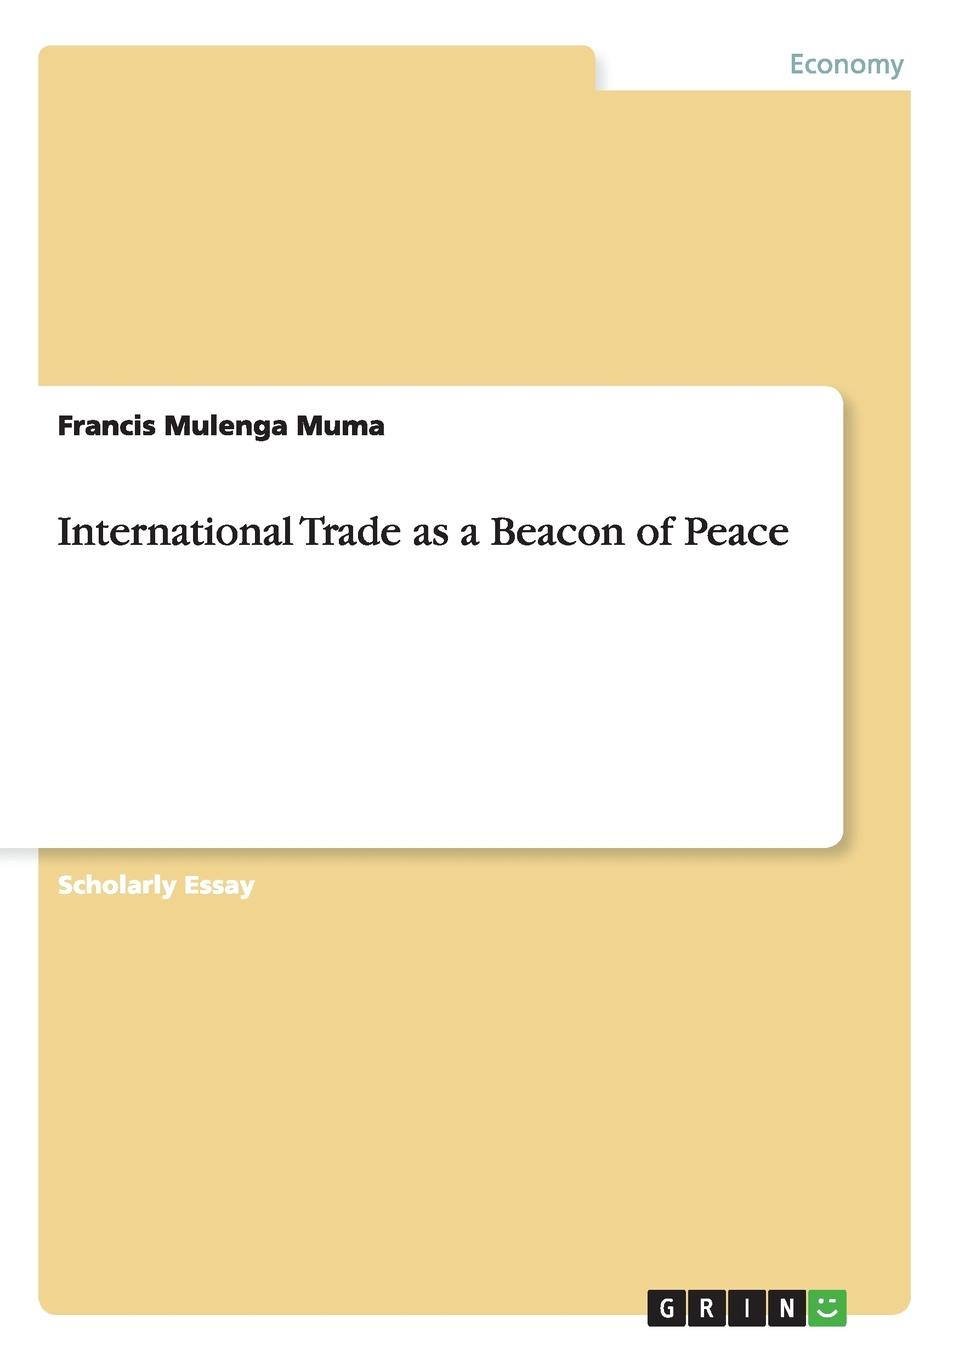 Francis Mulenga Muma International Trade as a Beacon of Peace kurt raaflaub a peace in the ancient world concepts and theories